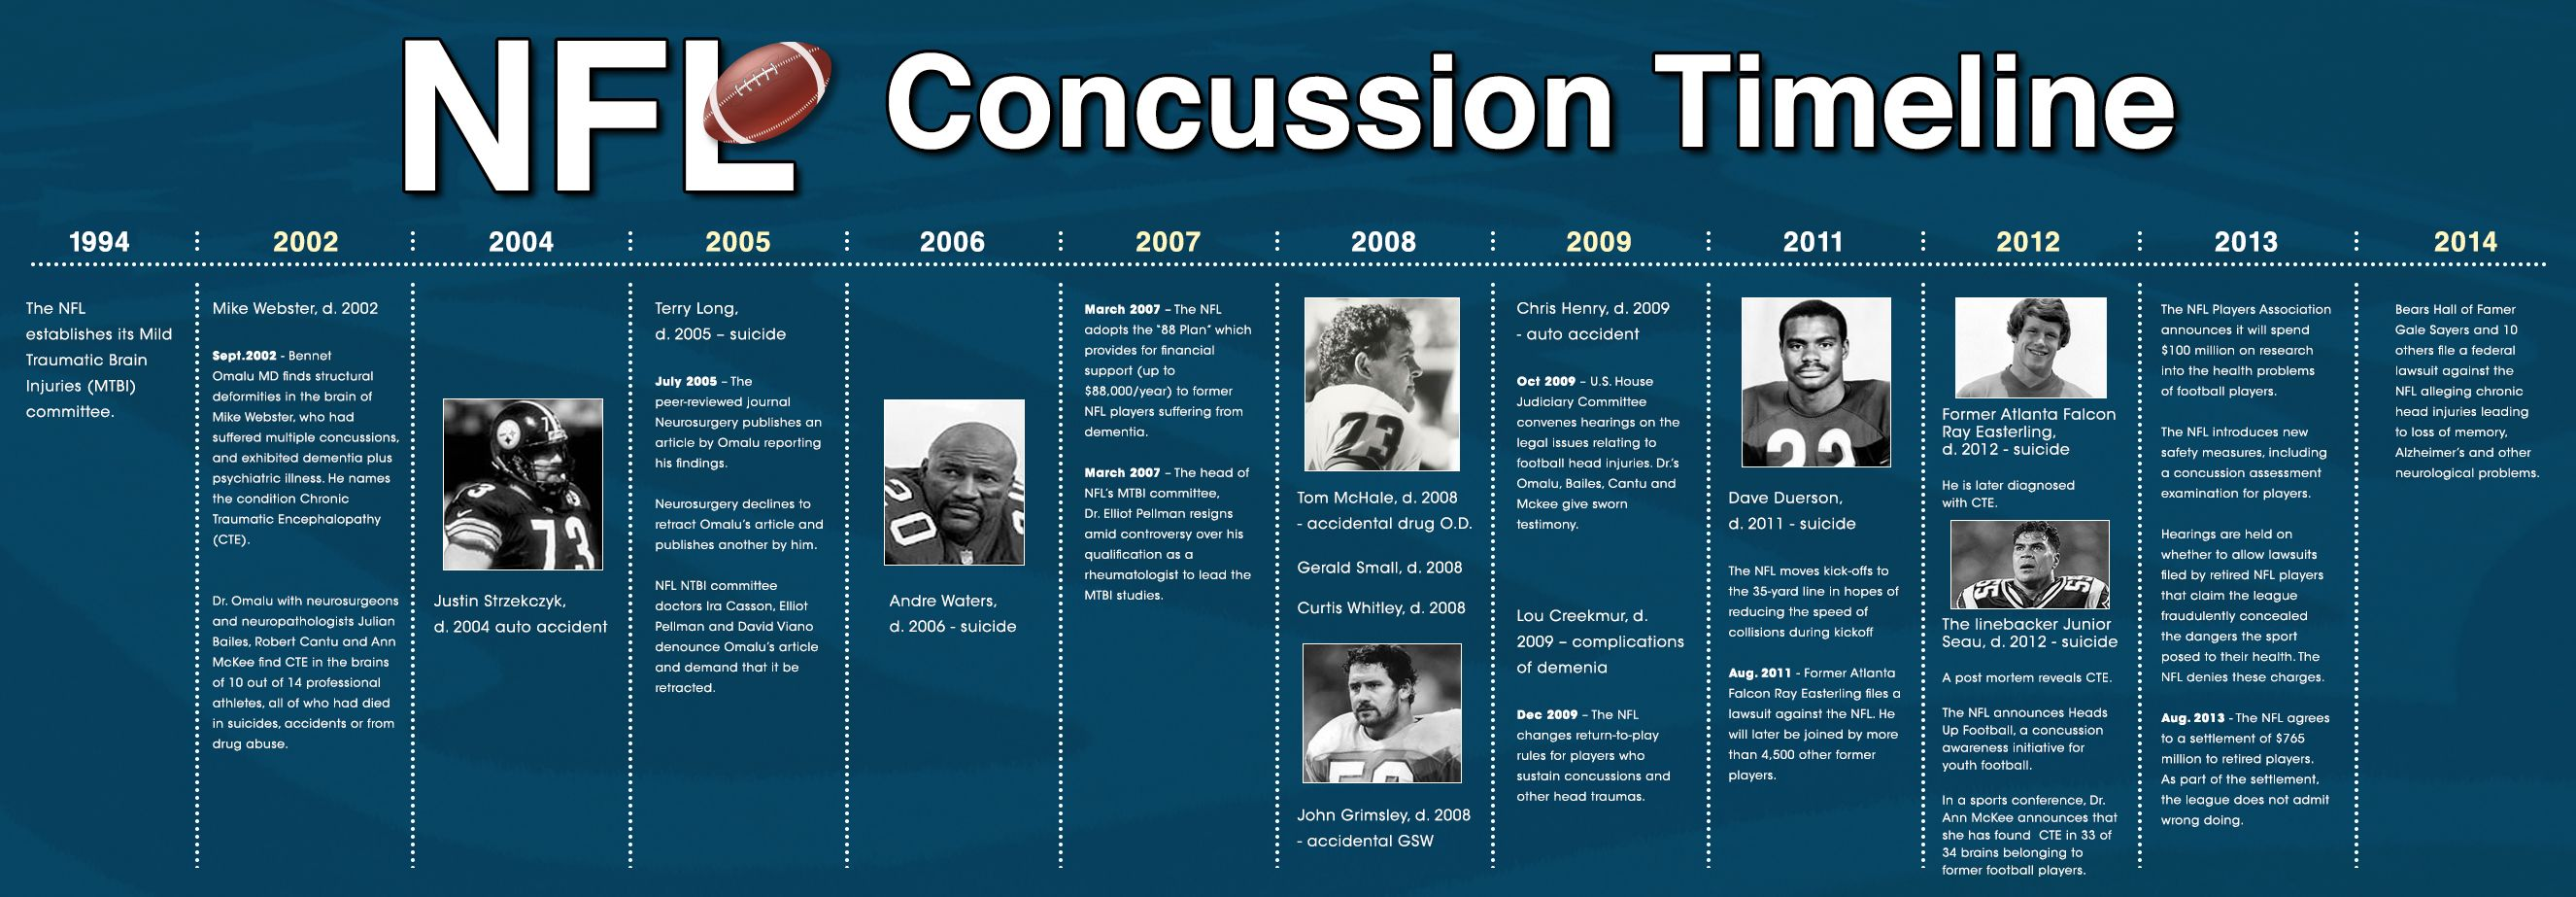 concussions and developing brains There are many ways to help reduce the risk of a concussion or other serious brain injury both on and off the sports field, including: tell athletes you expect good sportsmanship at all times, both on and off the playing field.